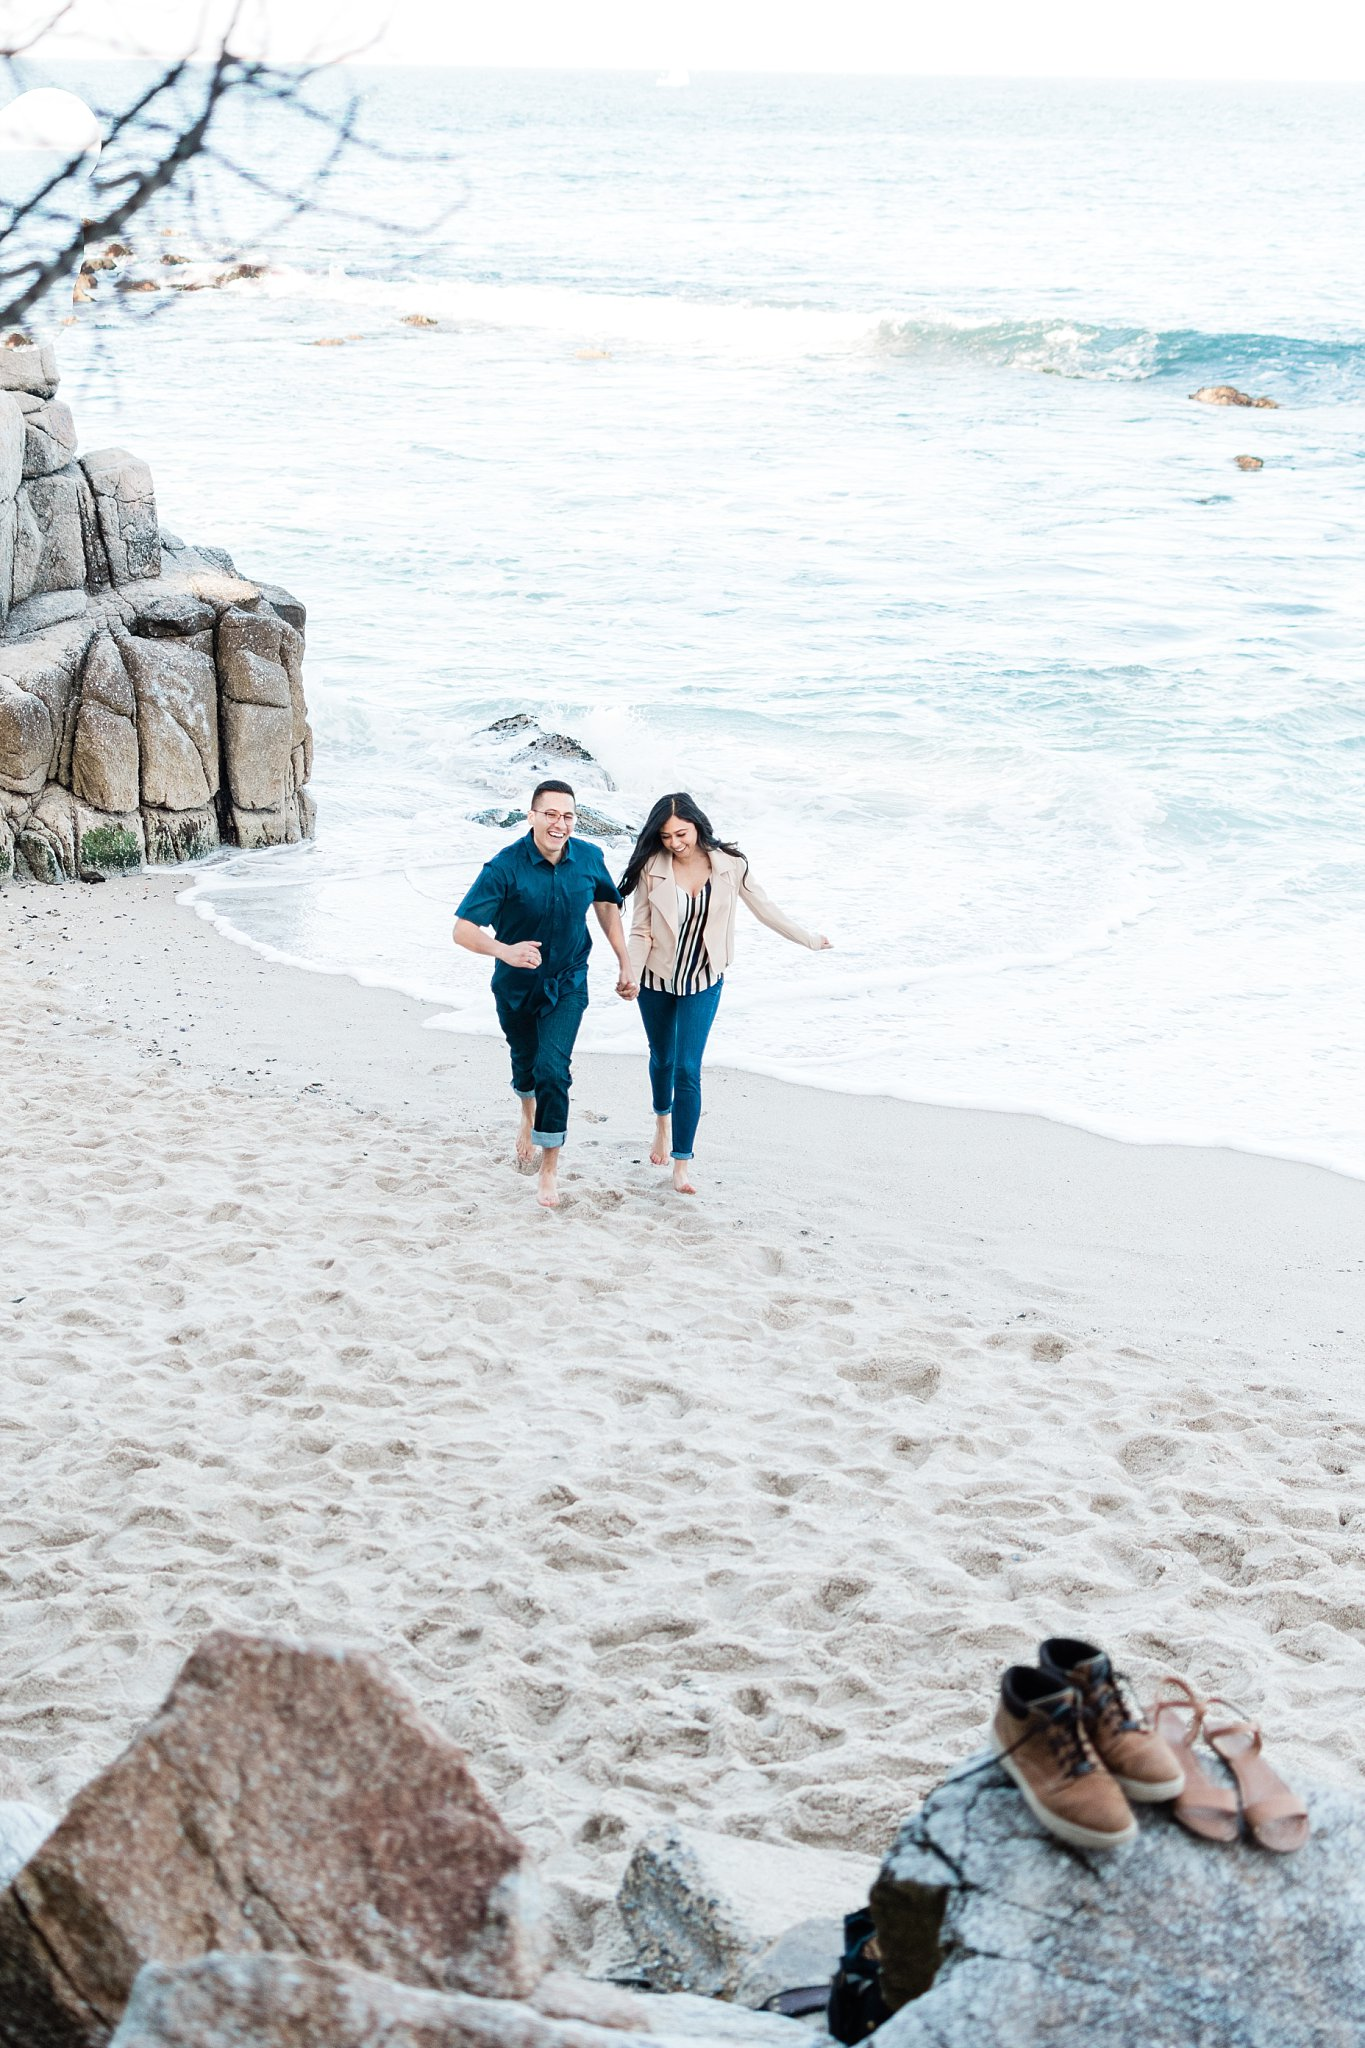 monterey-engagement-photographer-city-hall-drew-zavala-khrystal-chris_0061.jpg